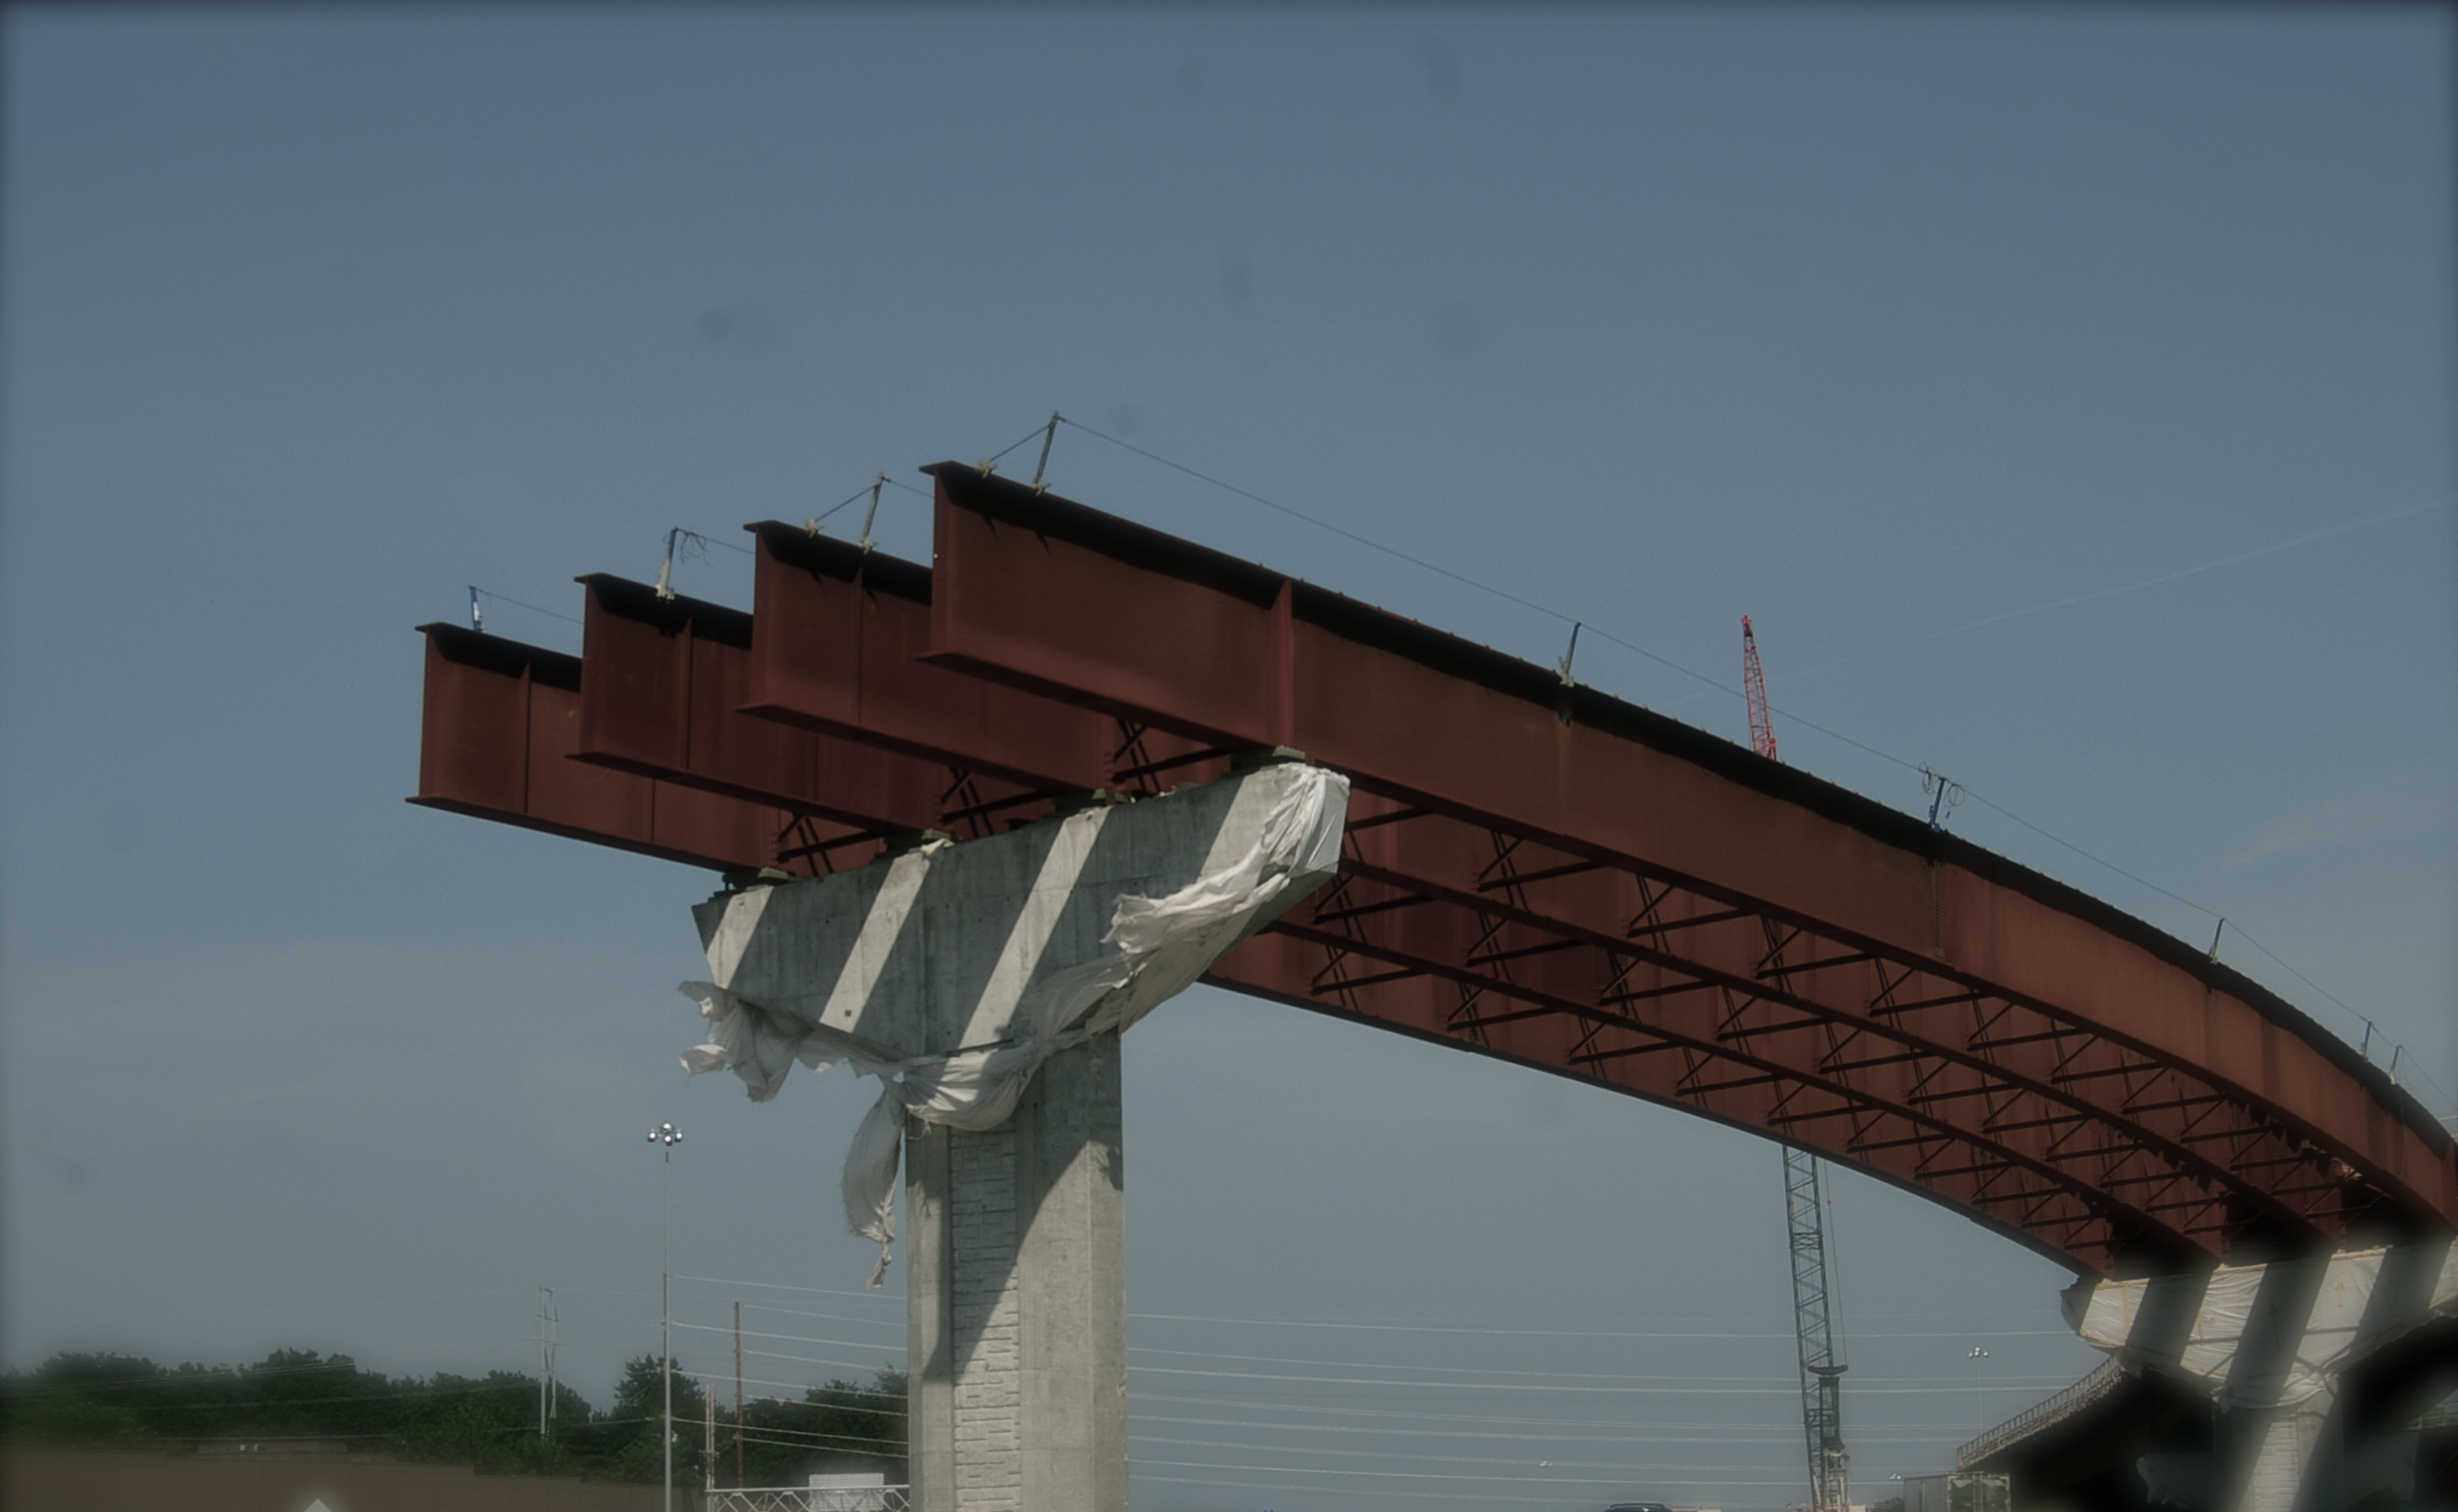 cropped photograph of a highway bridge under construction, showing heavy I-beams looming beyond the column support